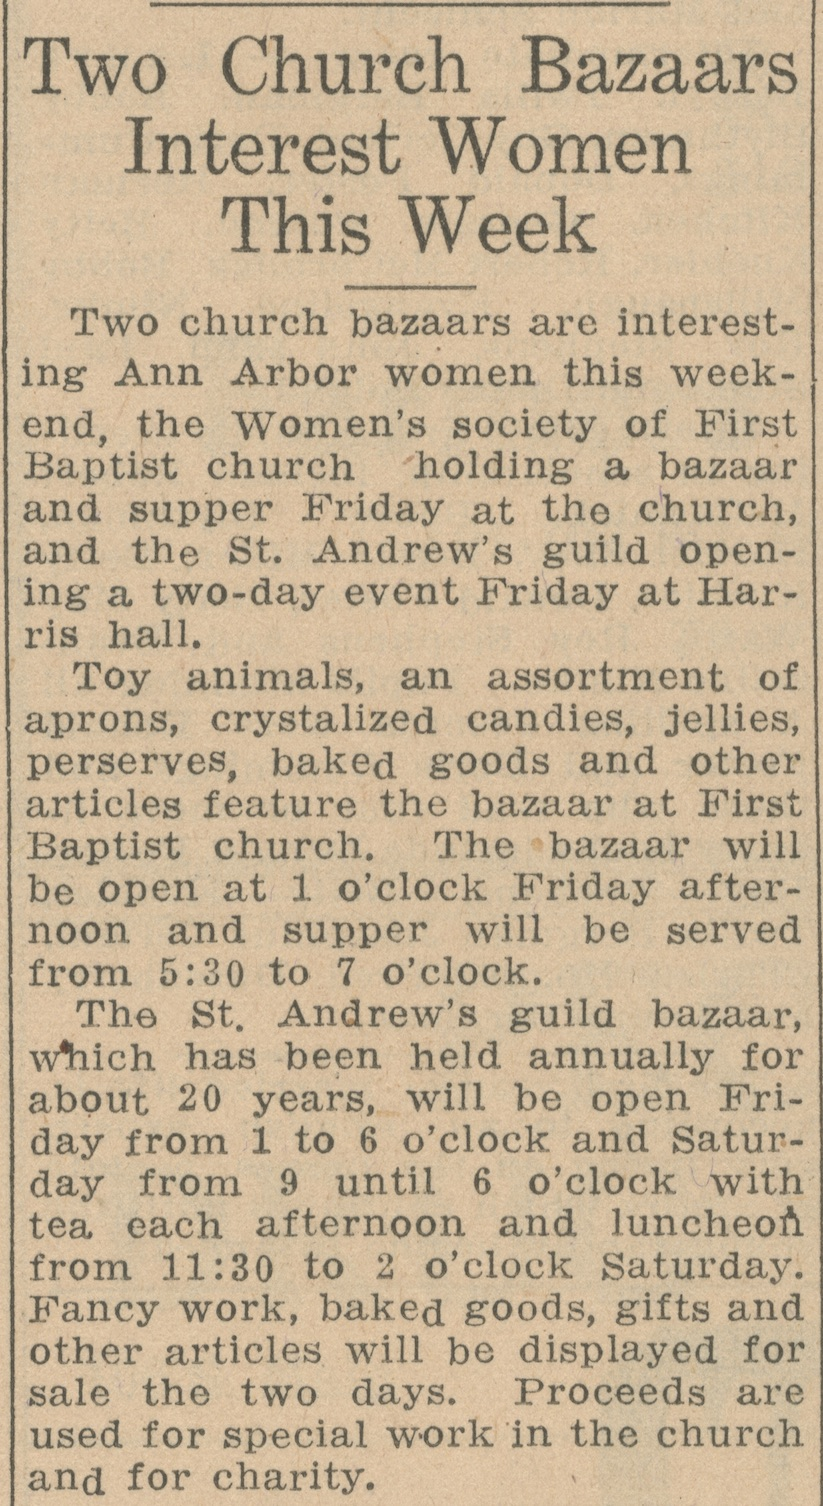 Two Church Bazaars Interest Women This Week image